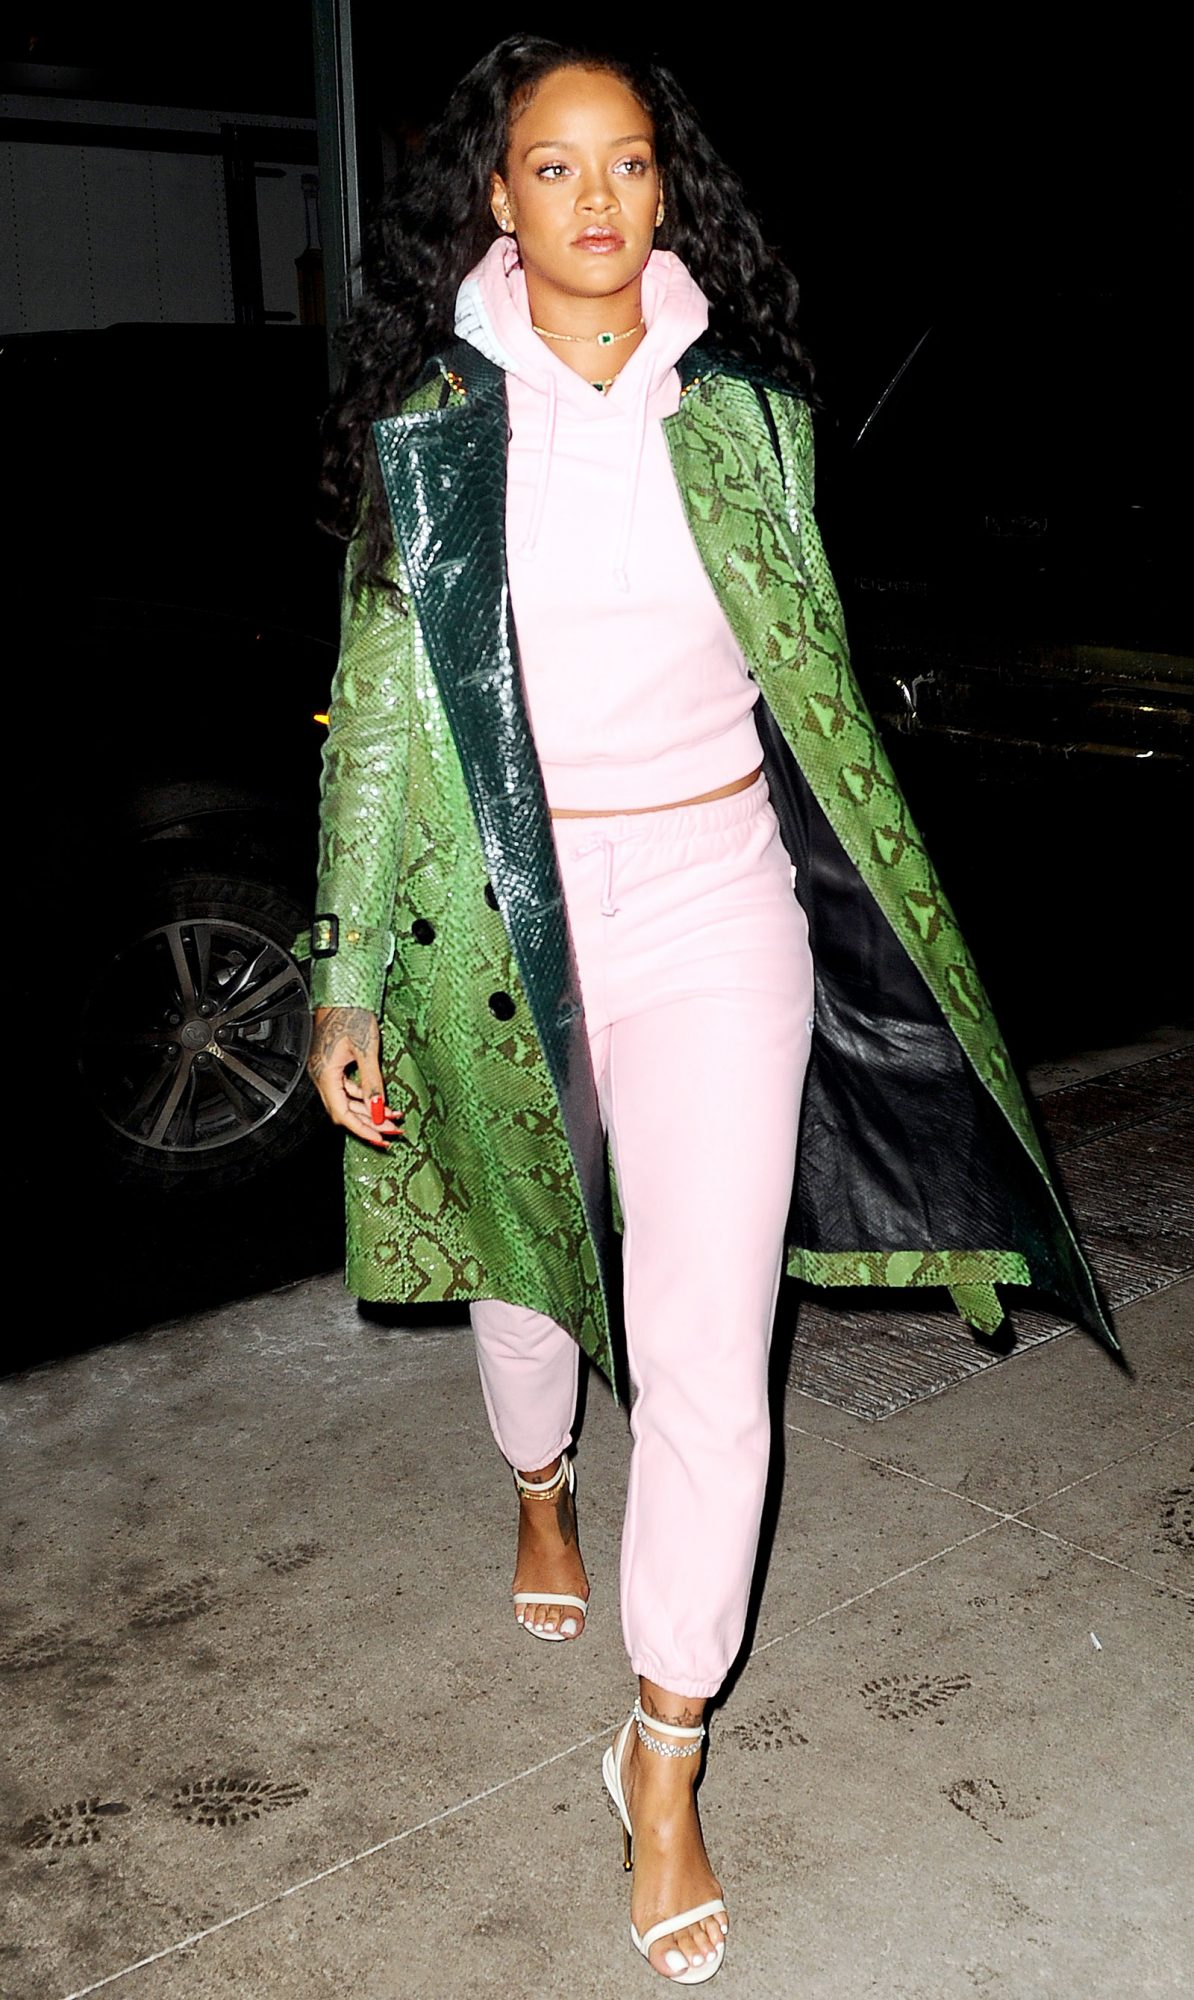 <p>Only RiRi could make kiwi dressing look hot.</p>